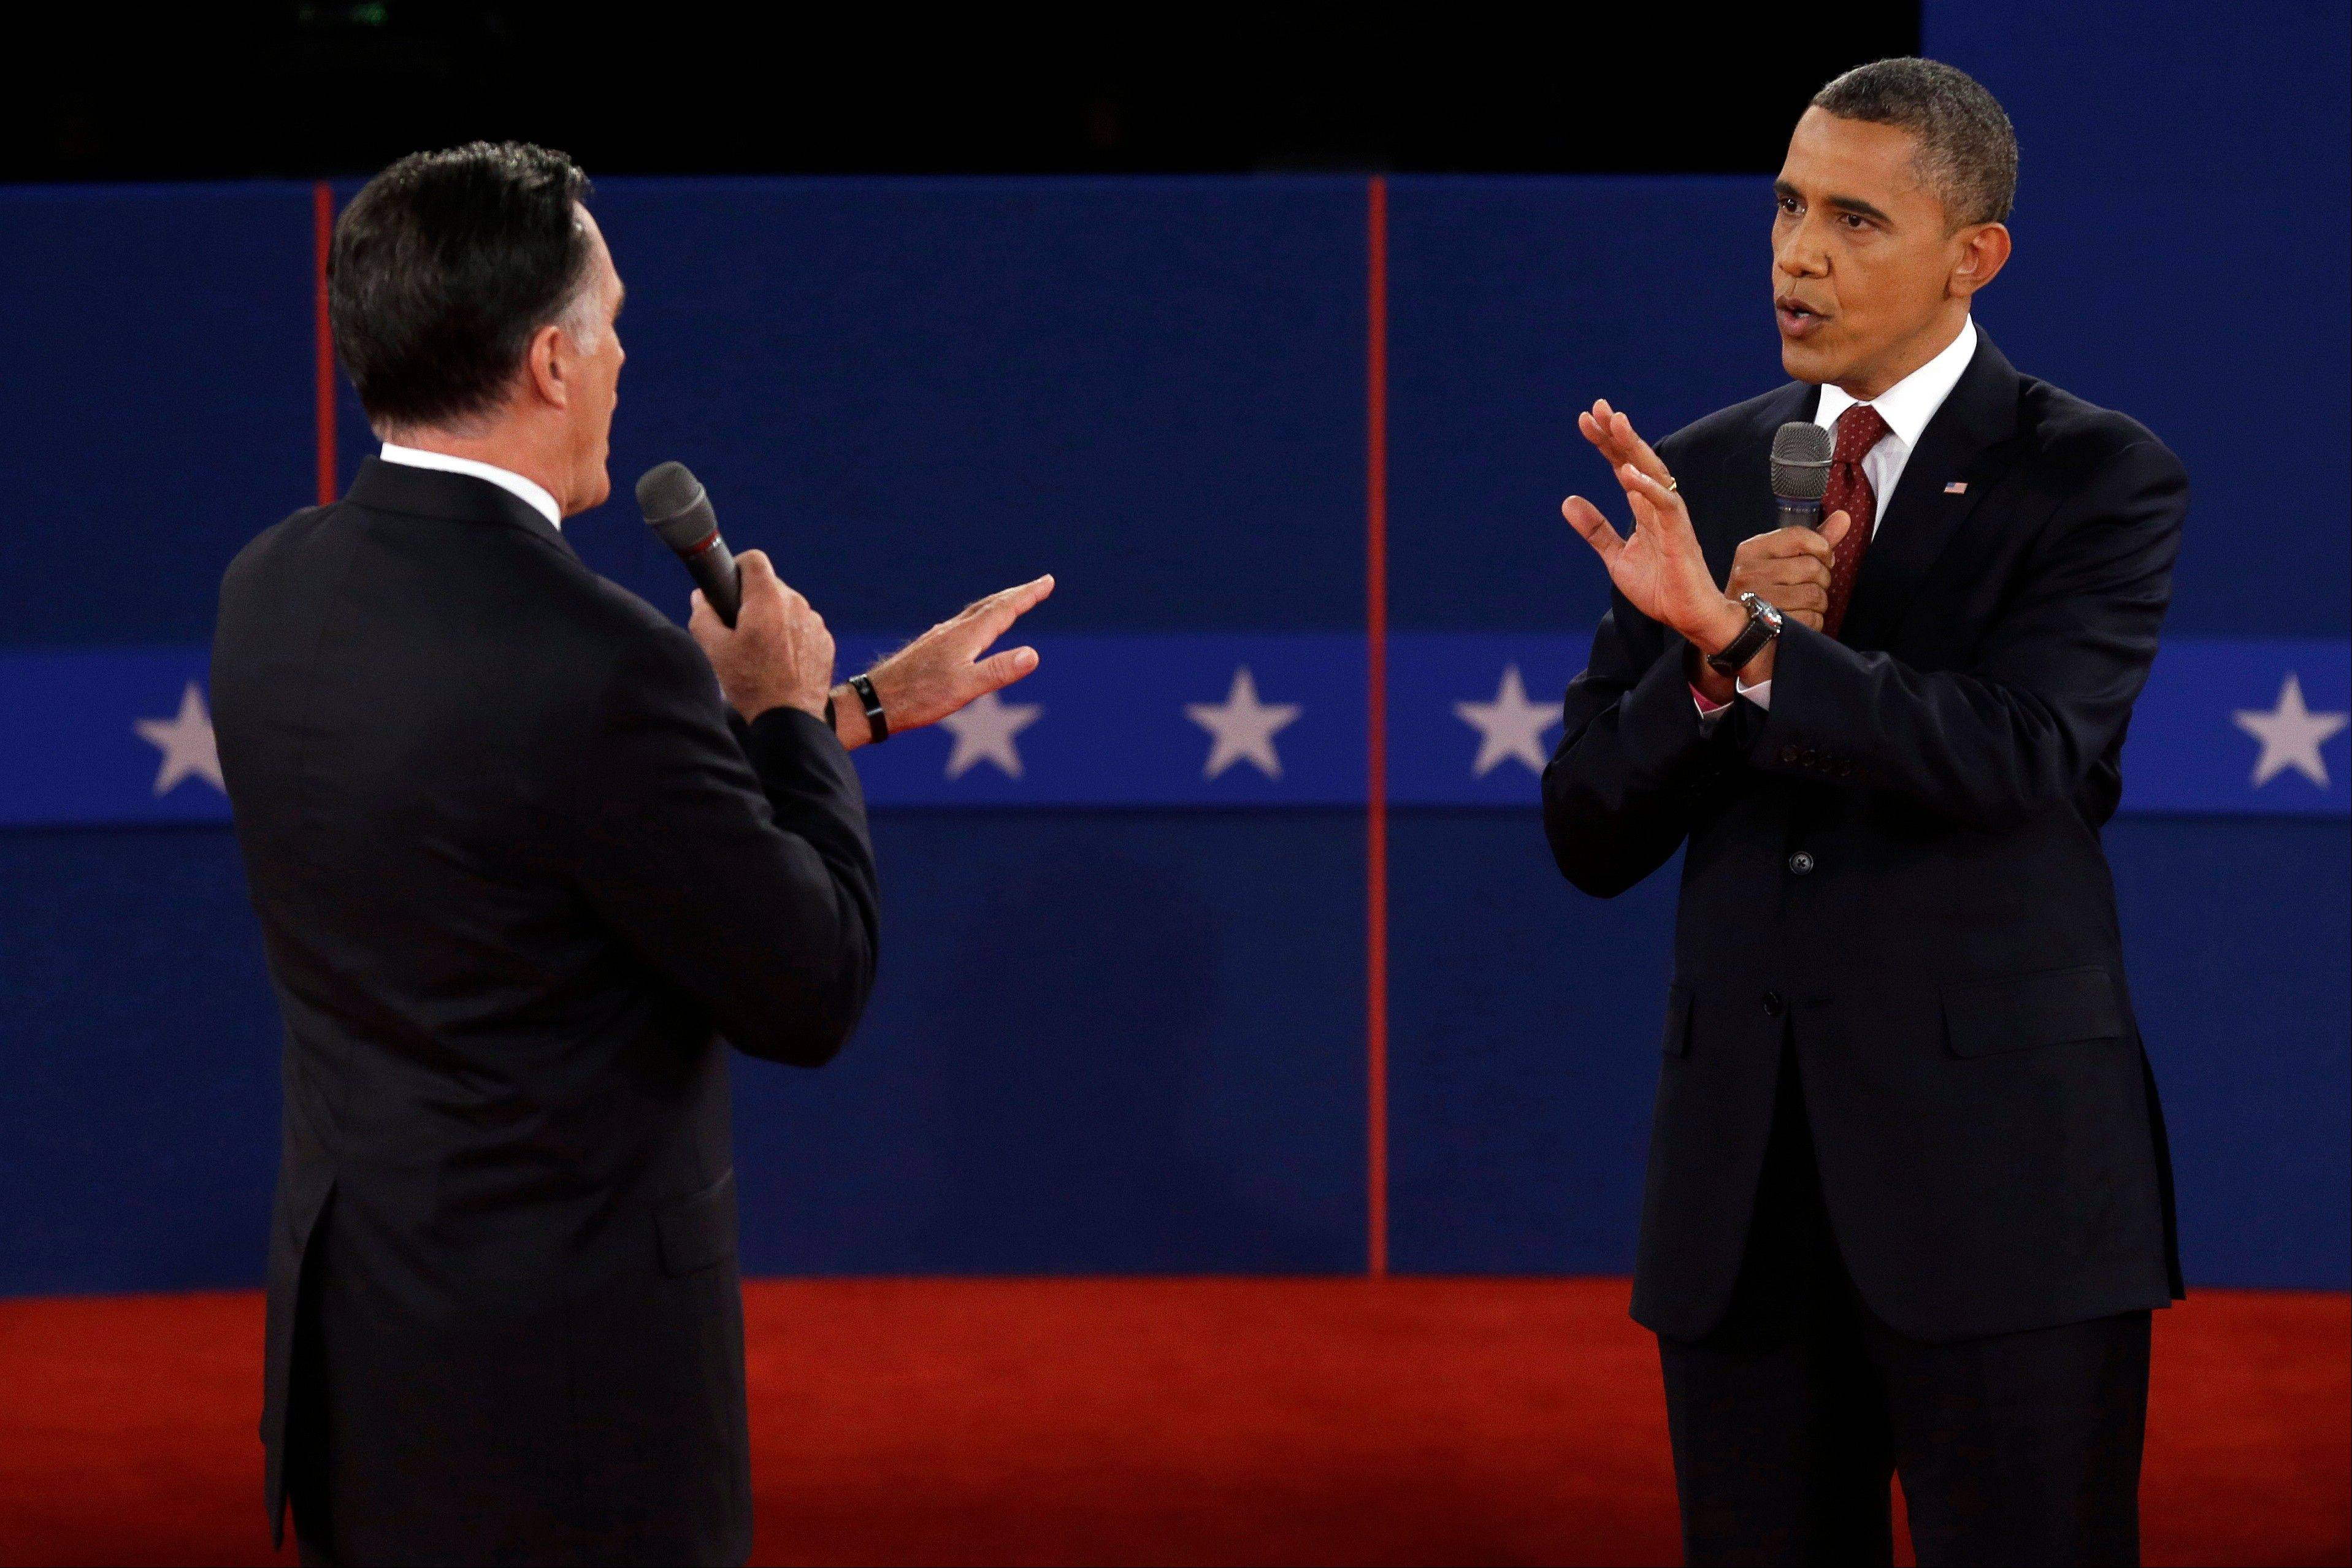 Republican presidential nominee Mitt Romney and President Barack Obama spar over energy policy during the second presidential debate at Hofstra University Tuesday night.